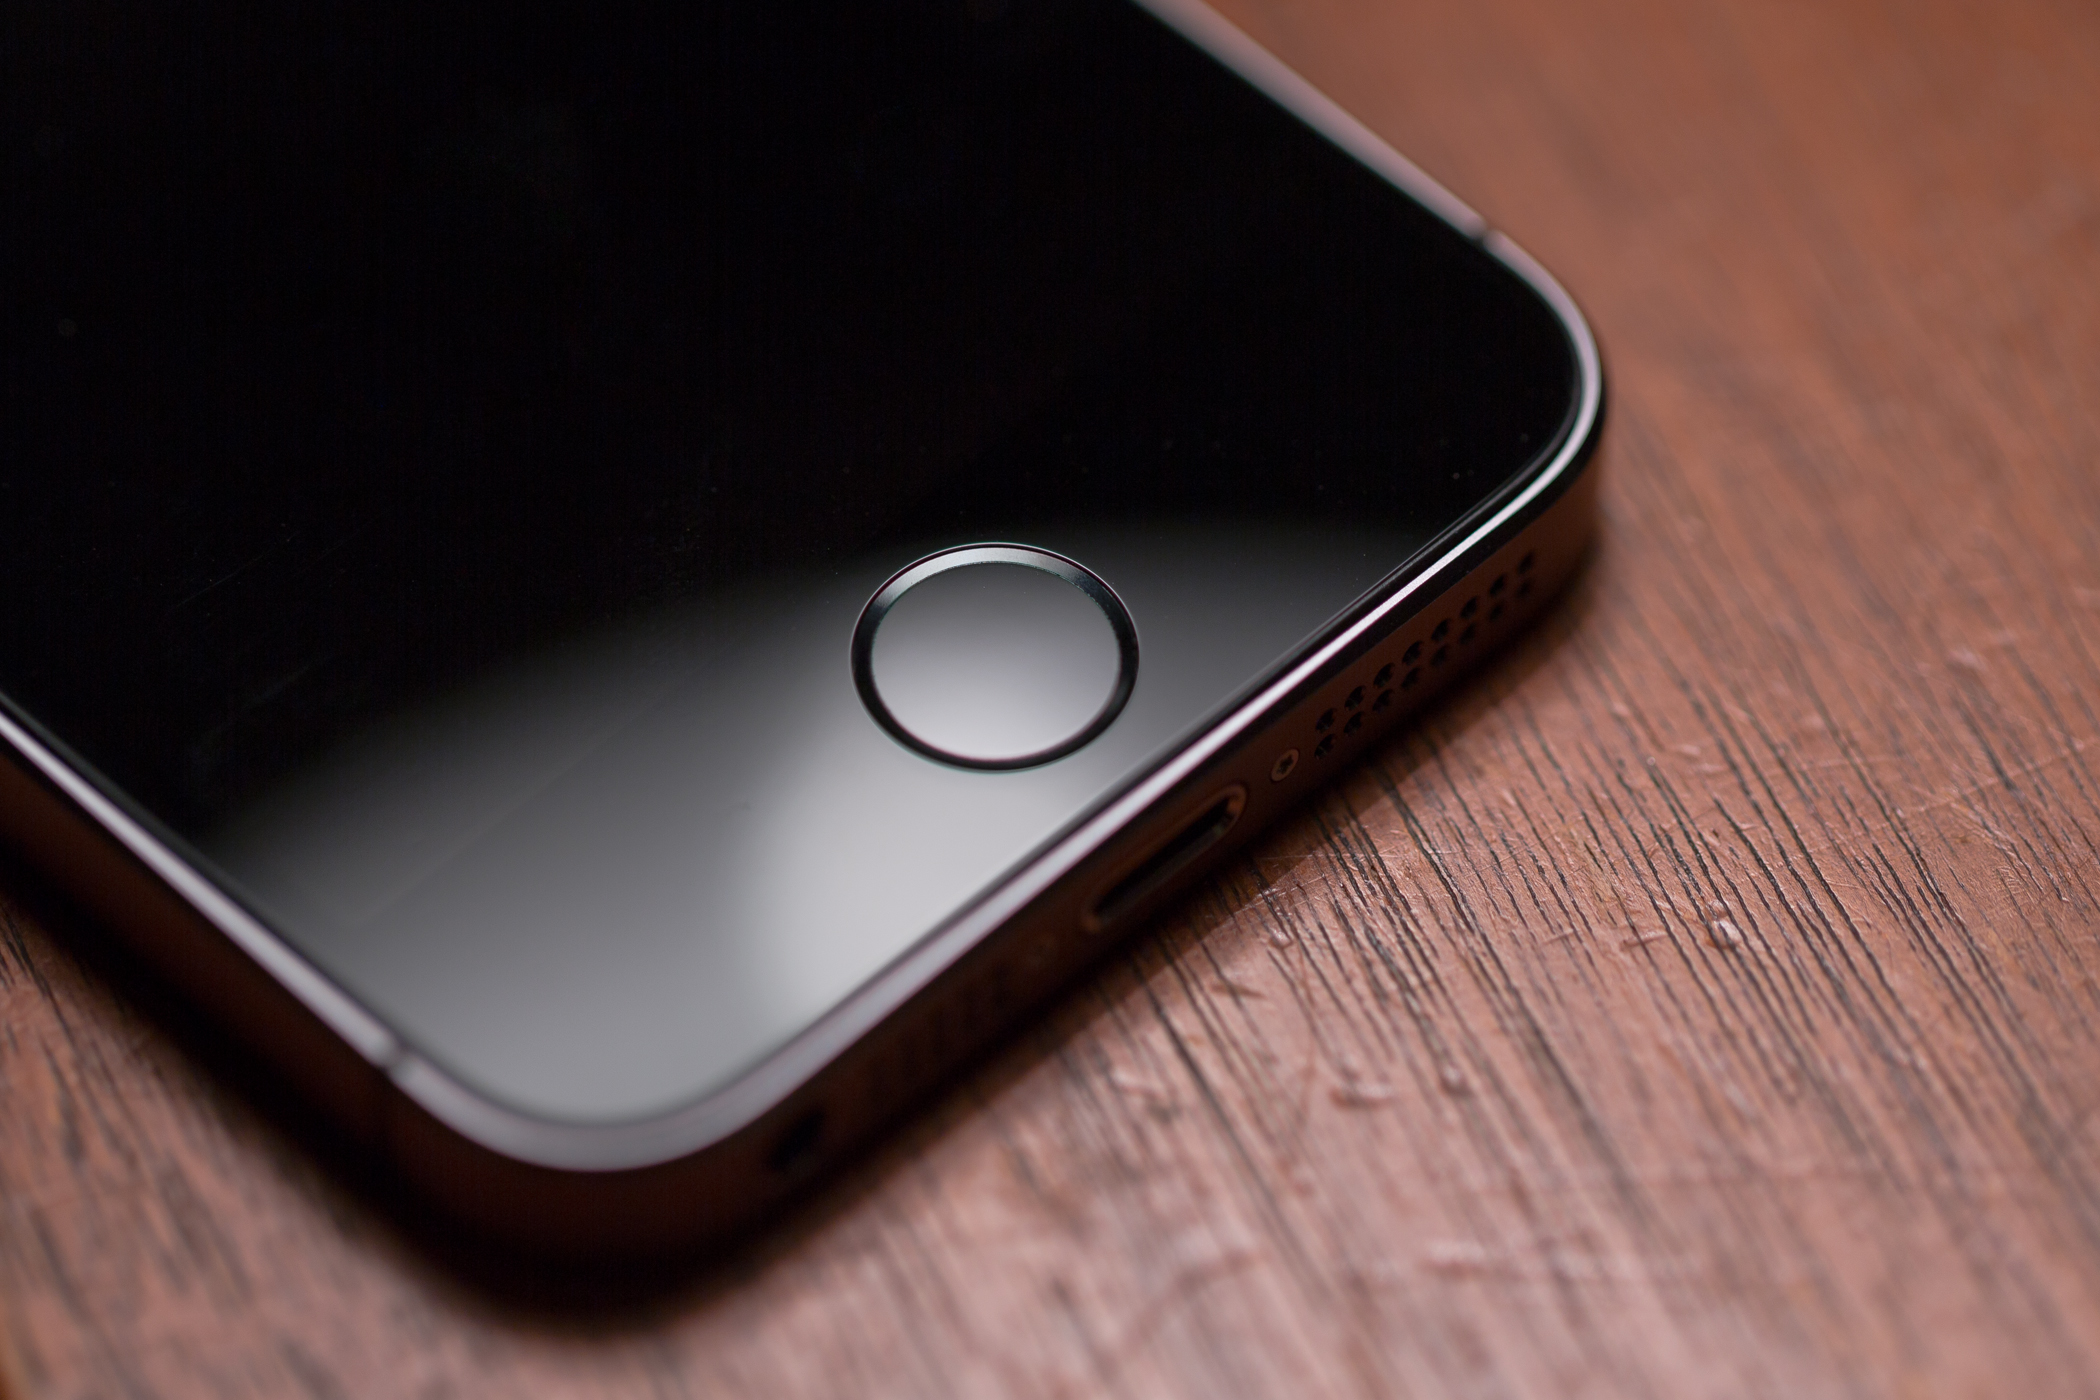 This tweak lets you unlock your iPhone with Touch ID even